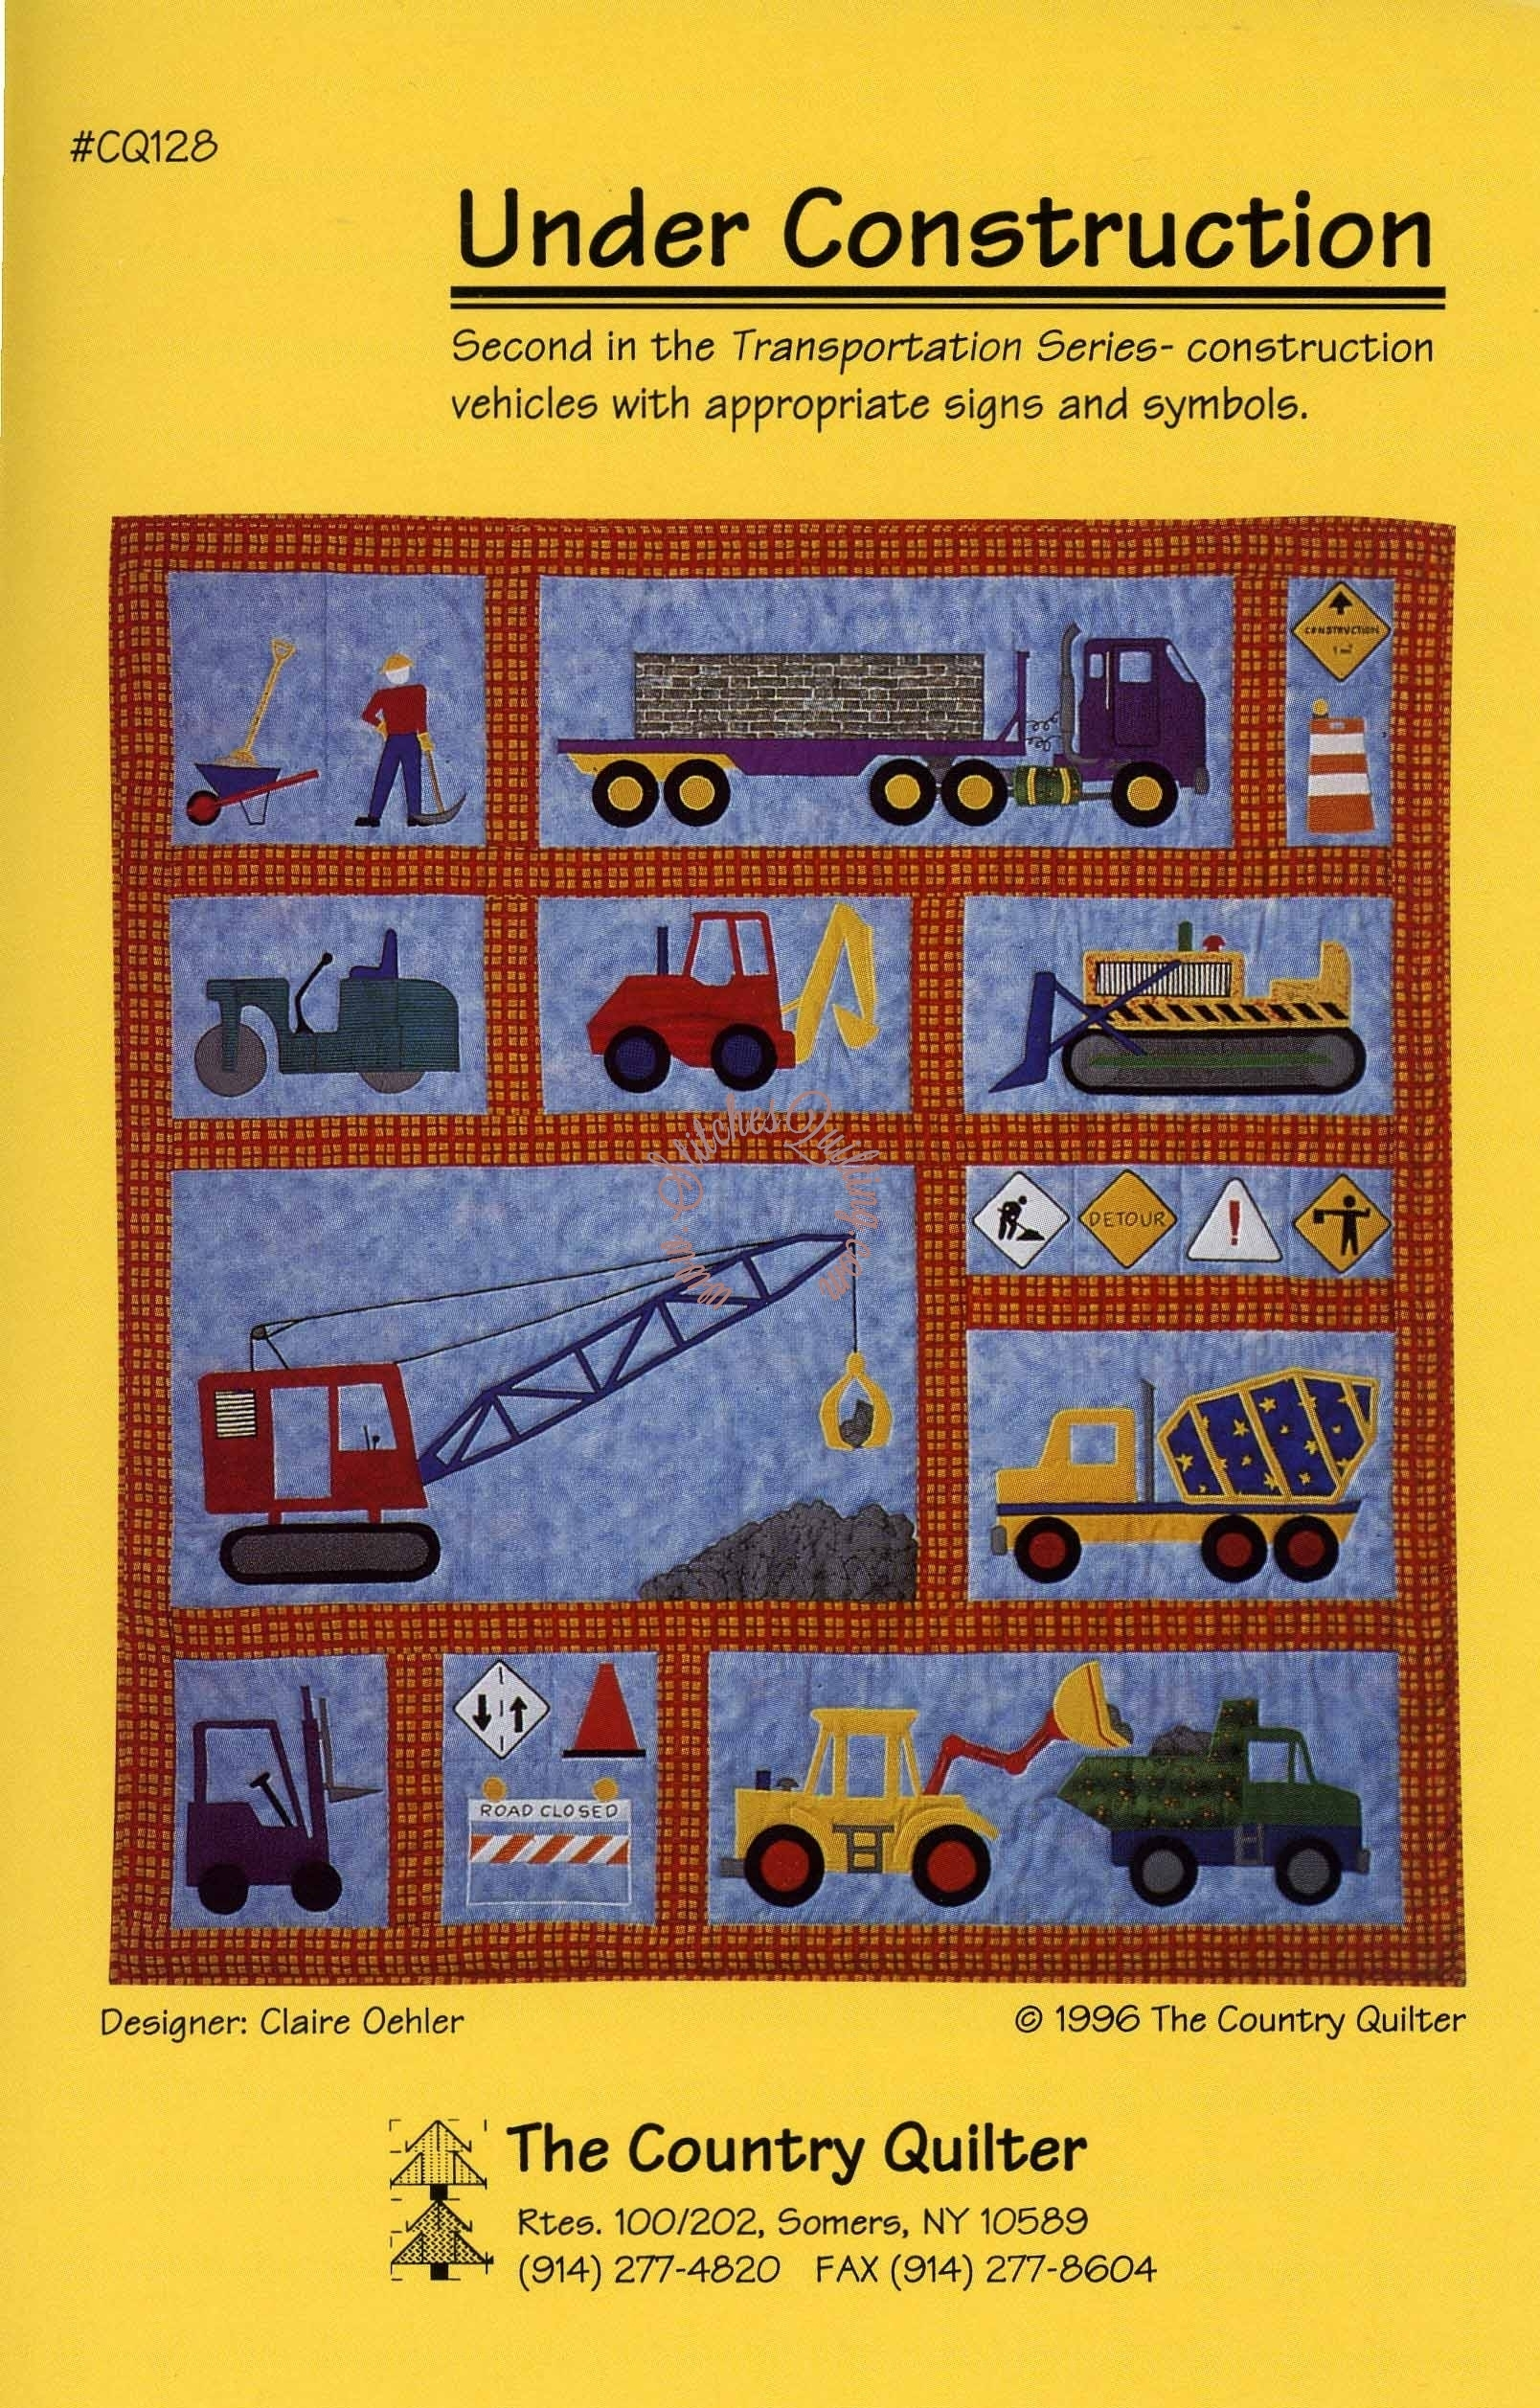 Under Construction The Country Quilter Stitches Quilting